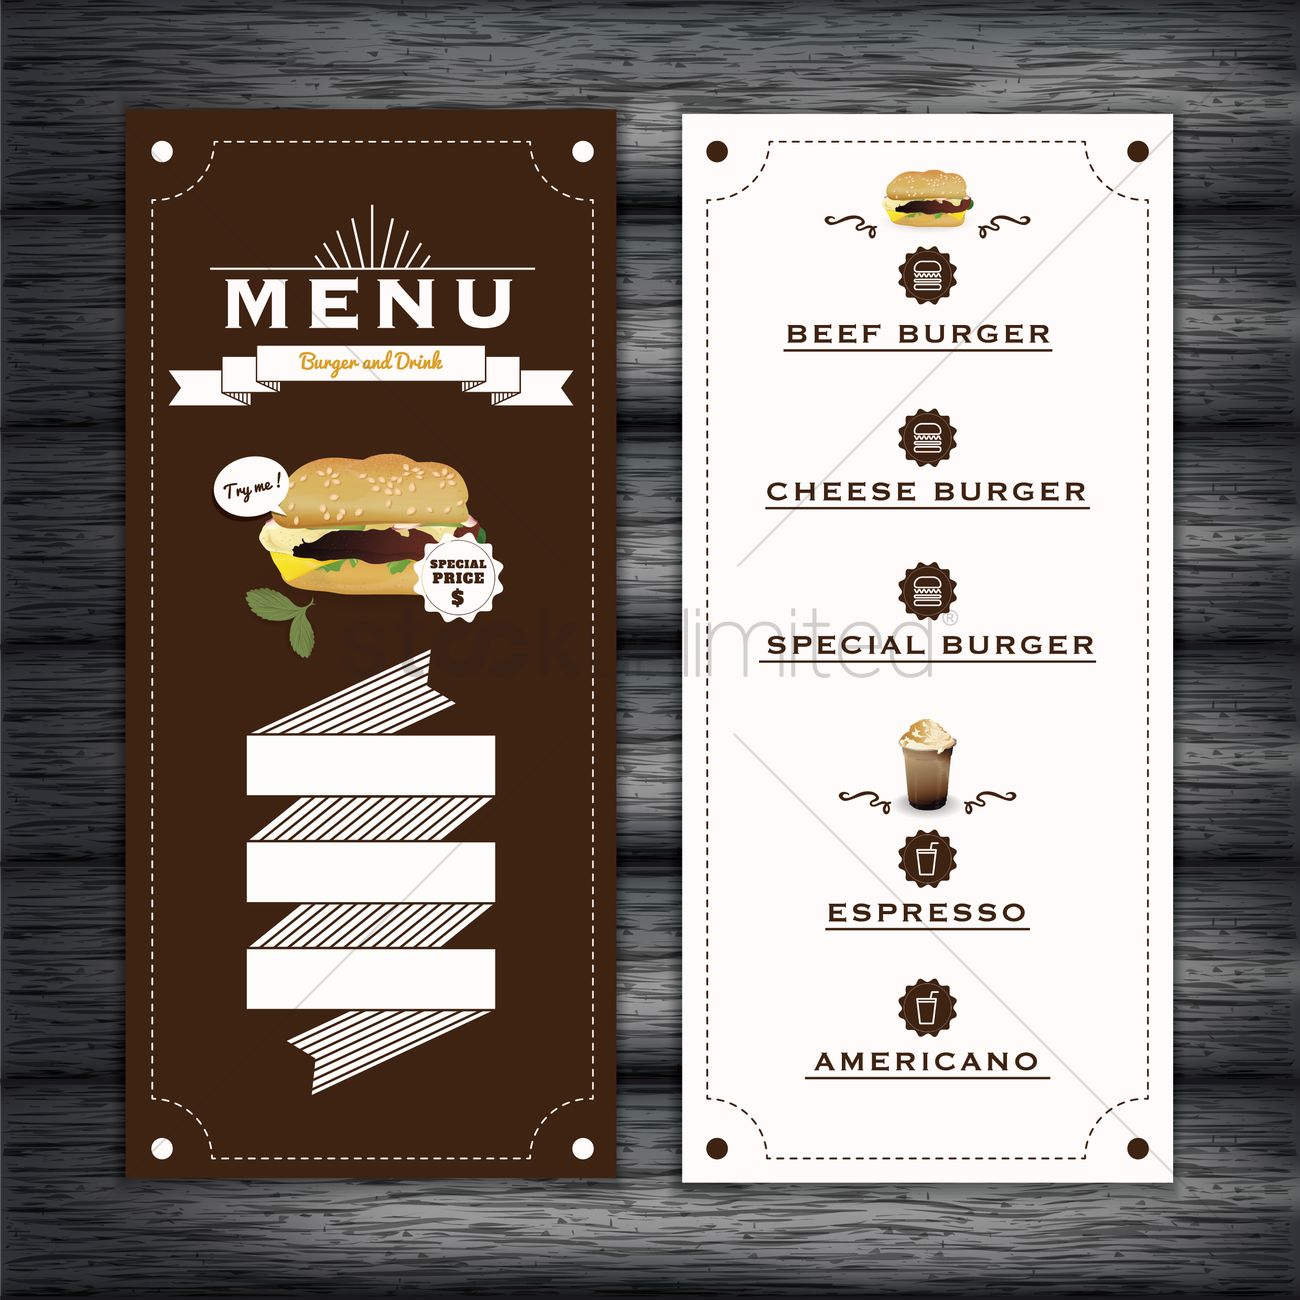 restaurant menu template design vector image 1959999 stockunlimited